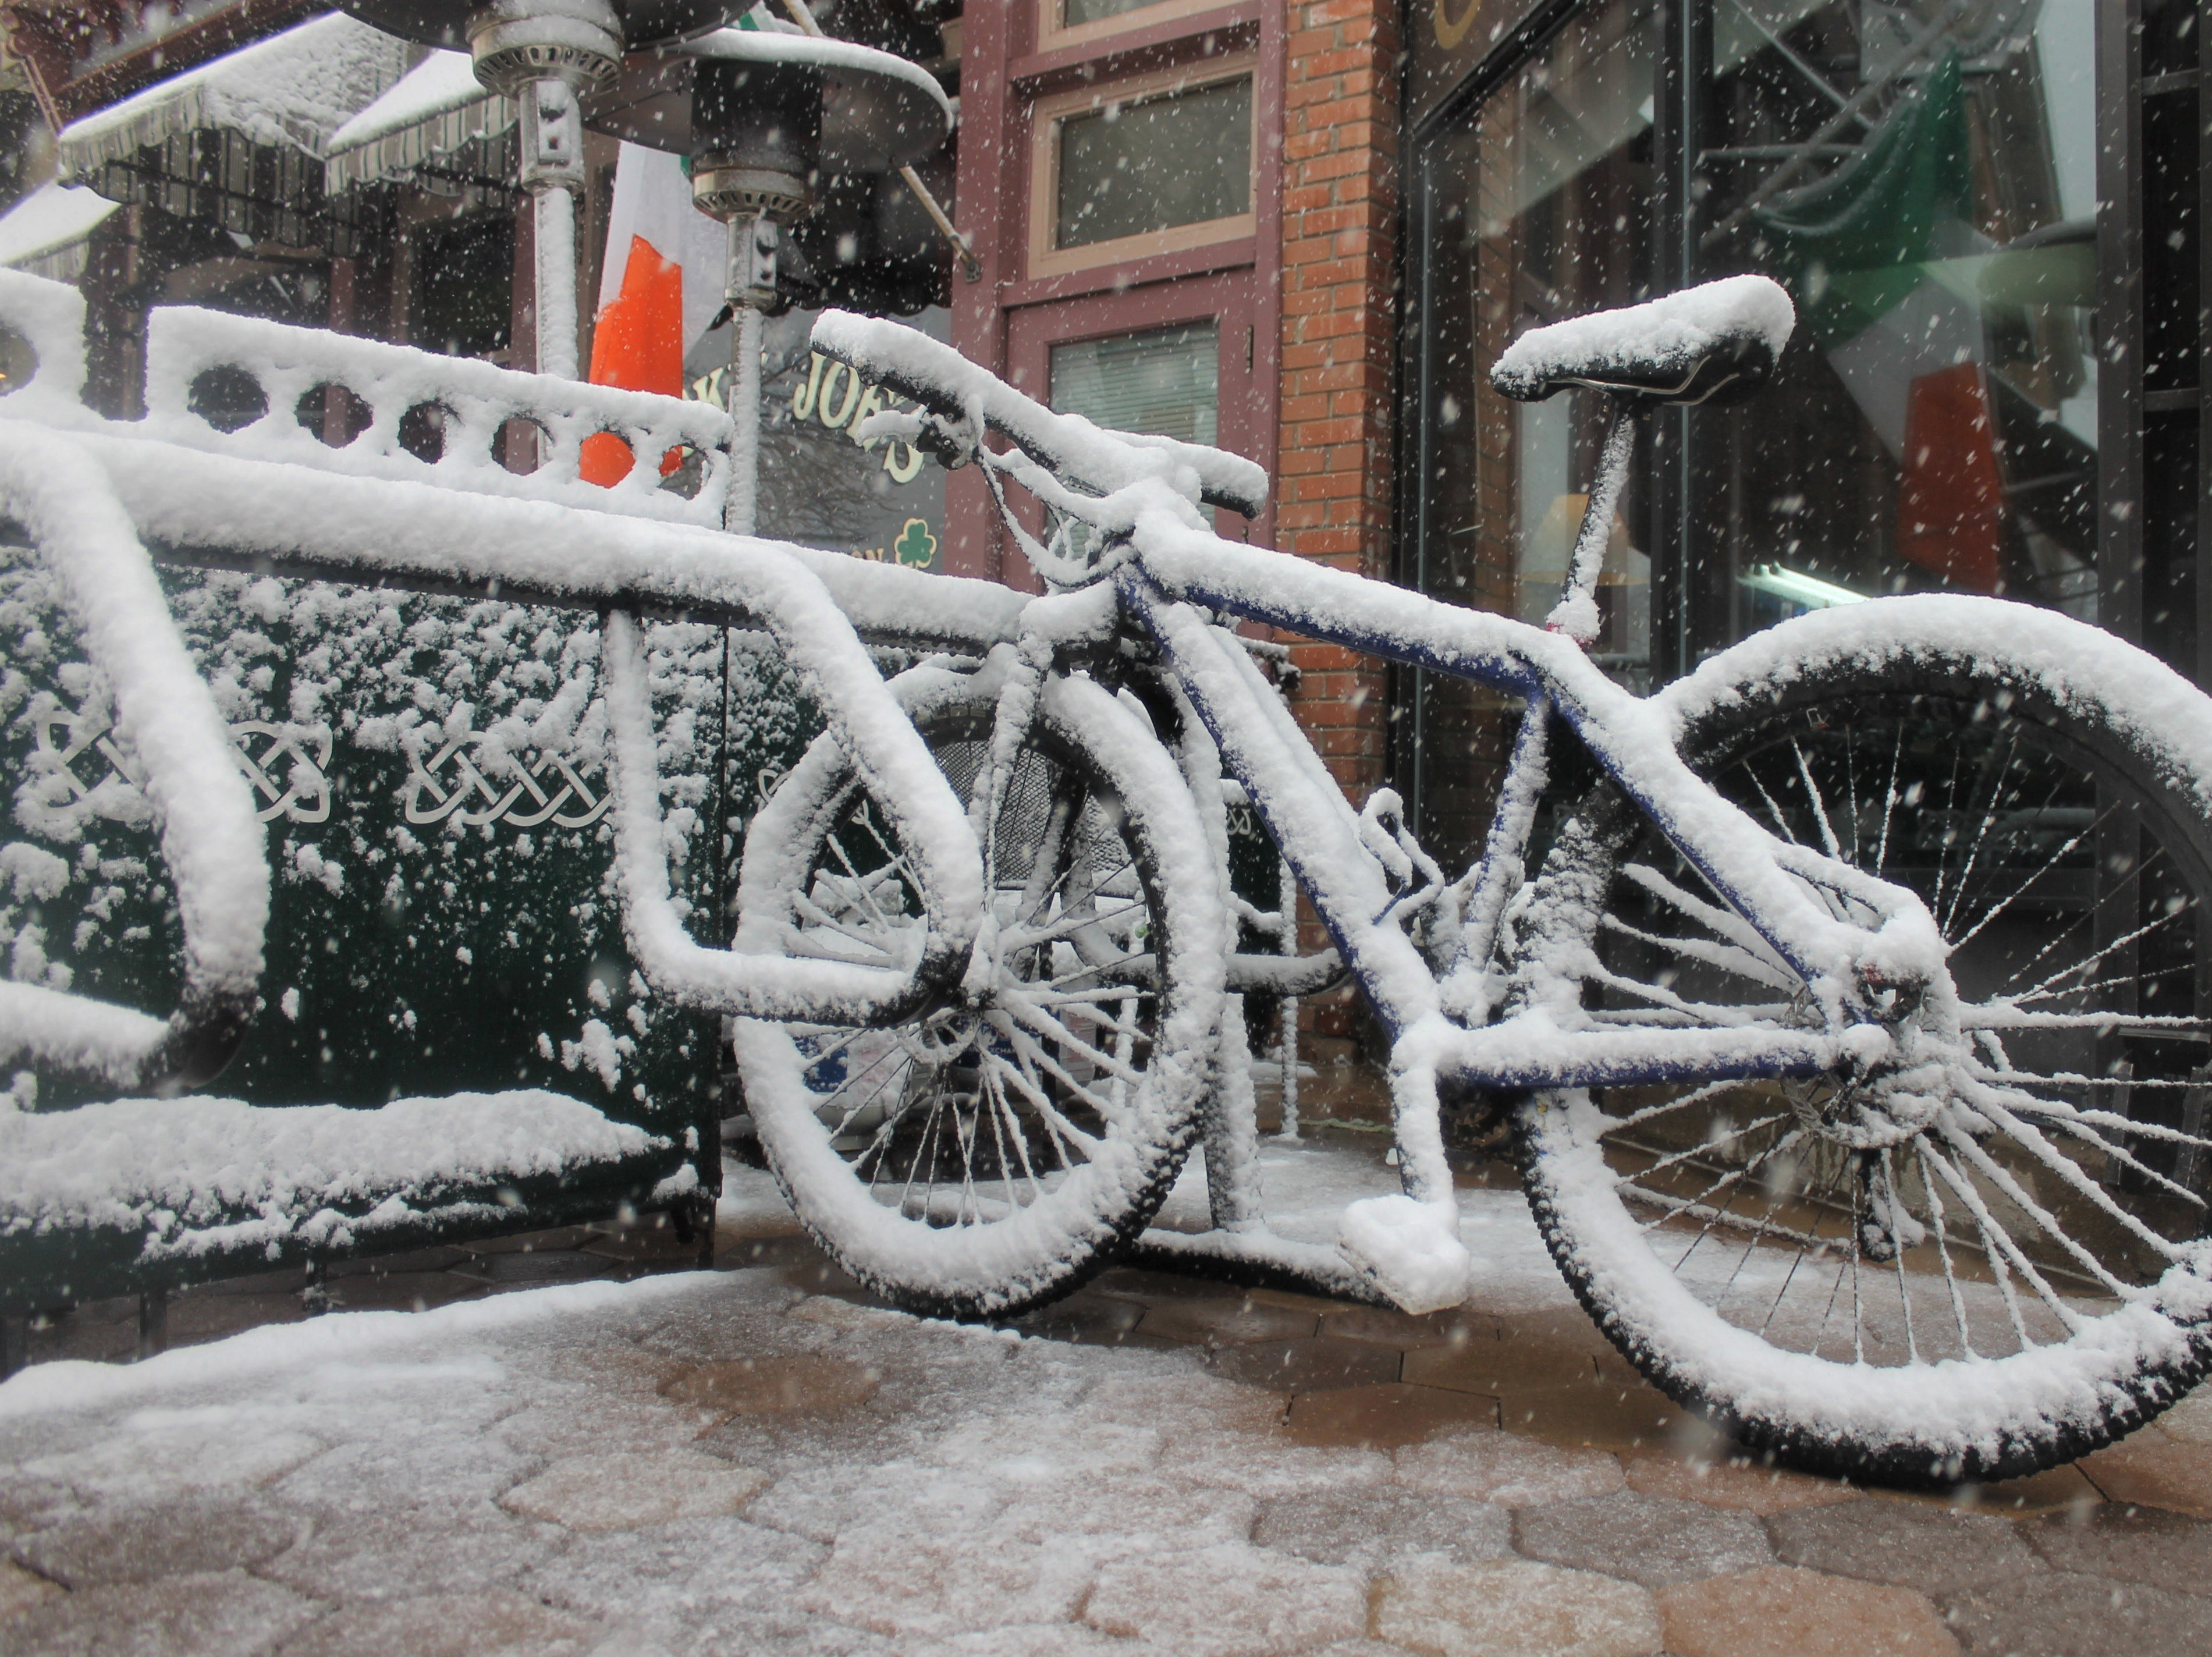 A bike collects snow in Old Town as a blizzard roles in to Fort Collins Wednesday, April 10.